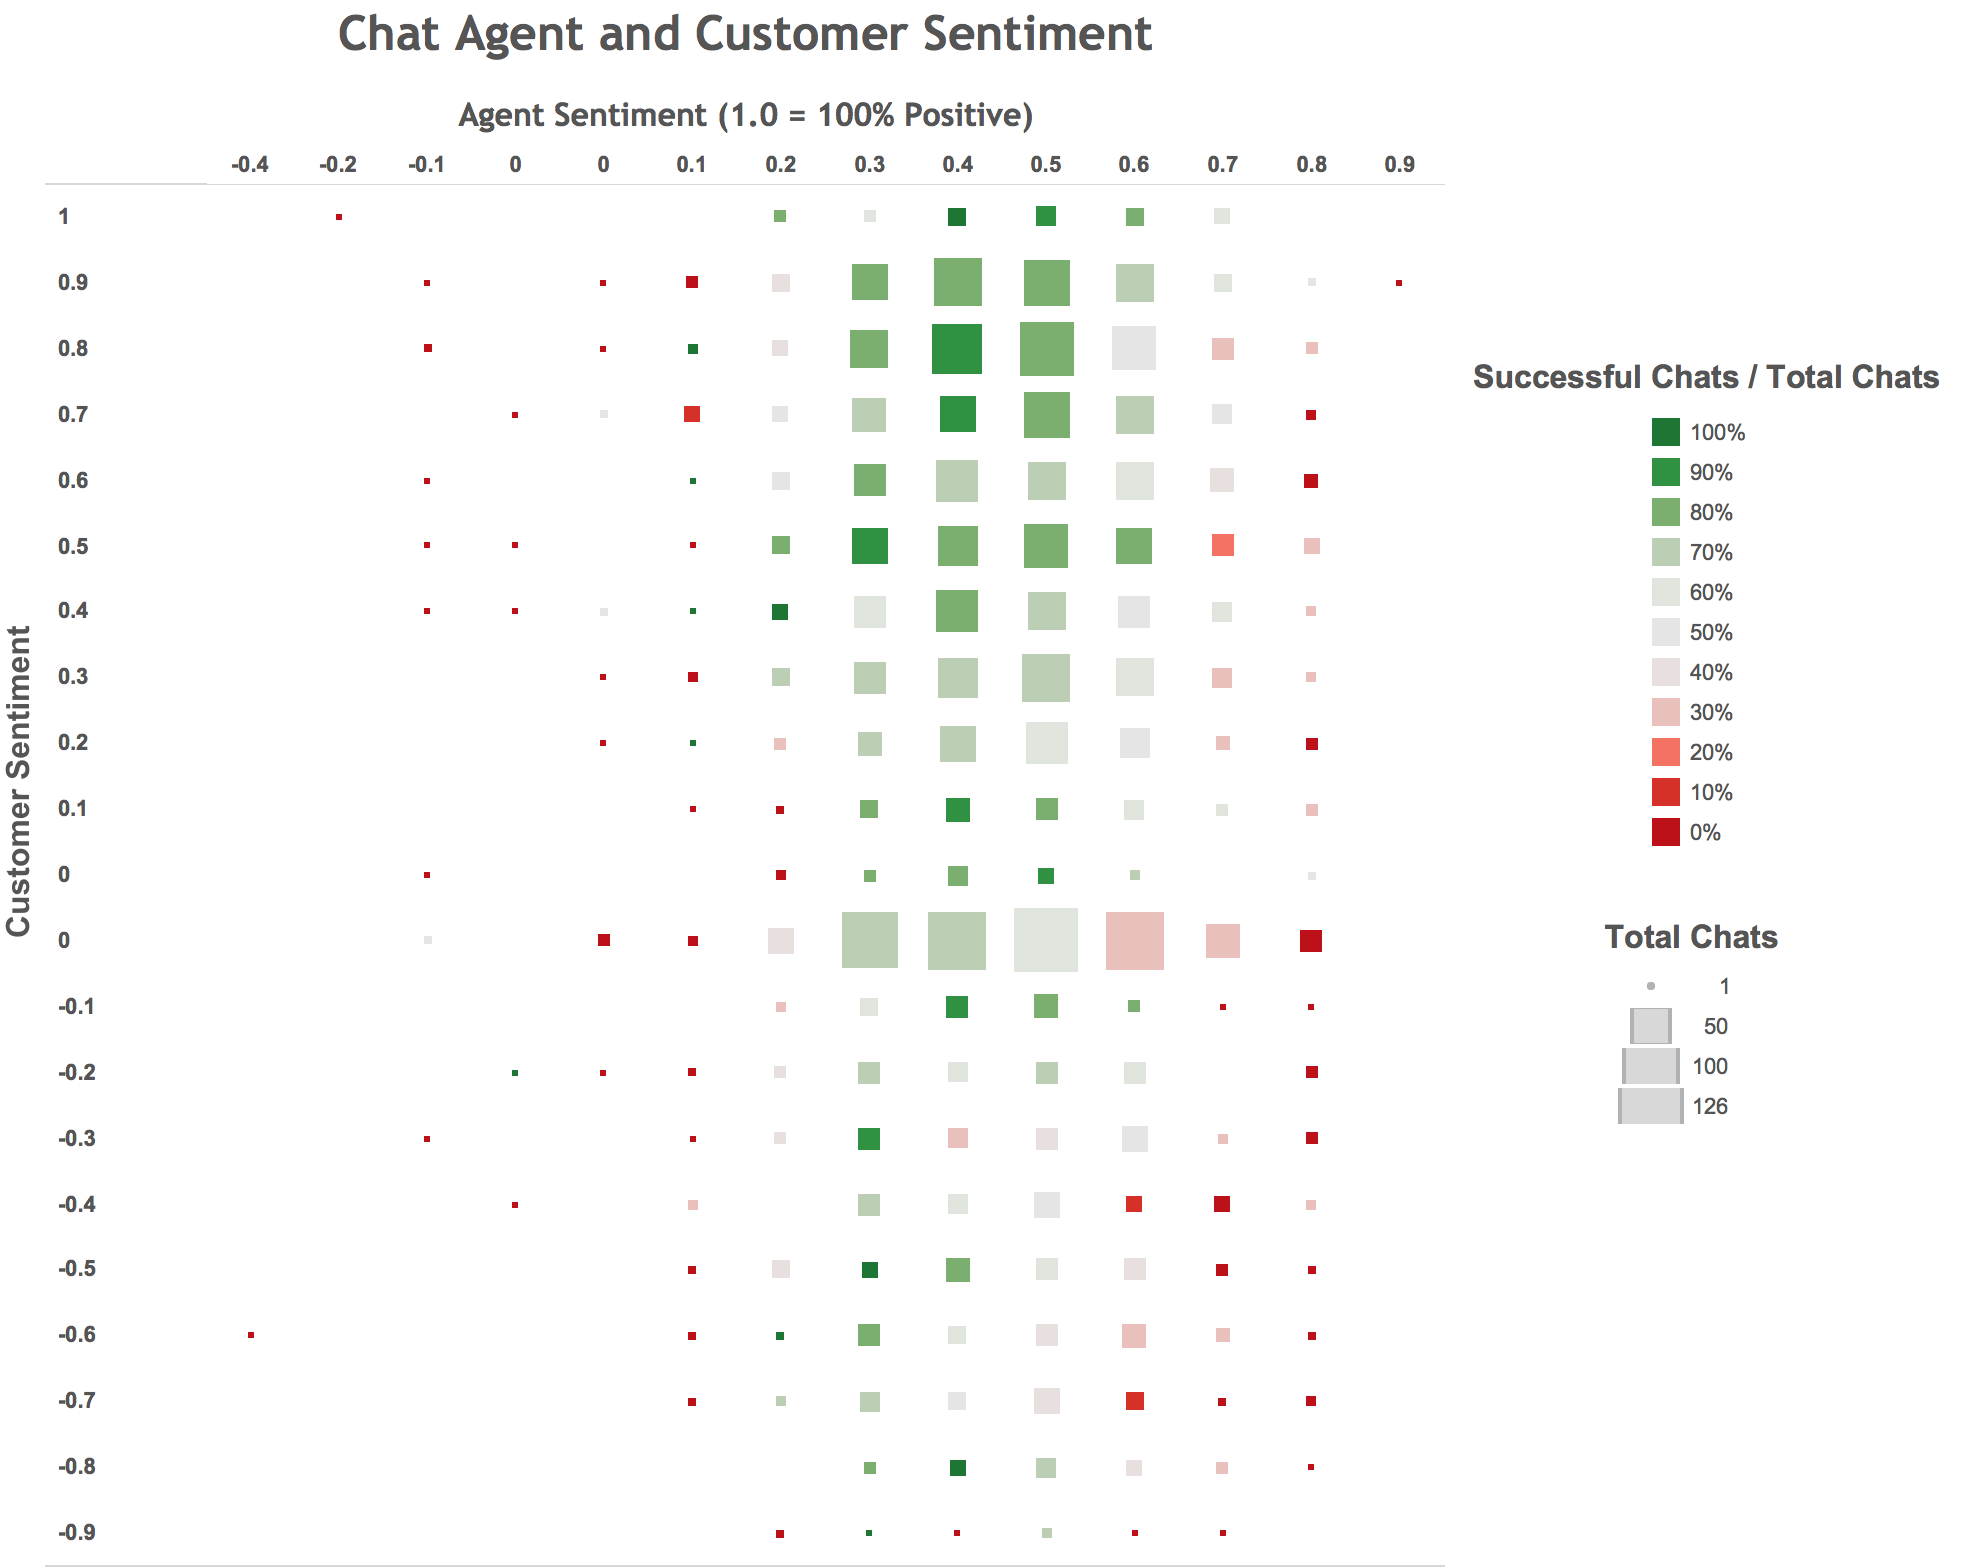 Chats with positive sentiment generate more follow-up calls from customers